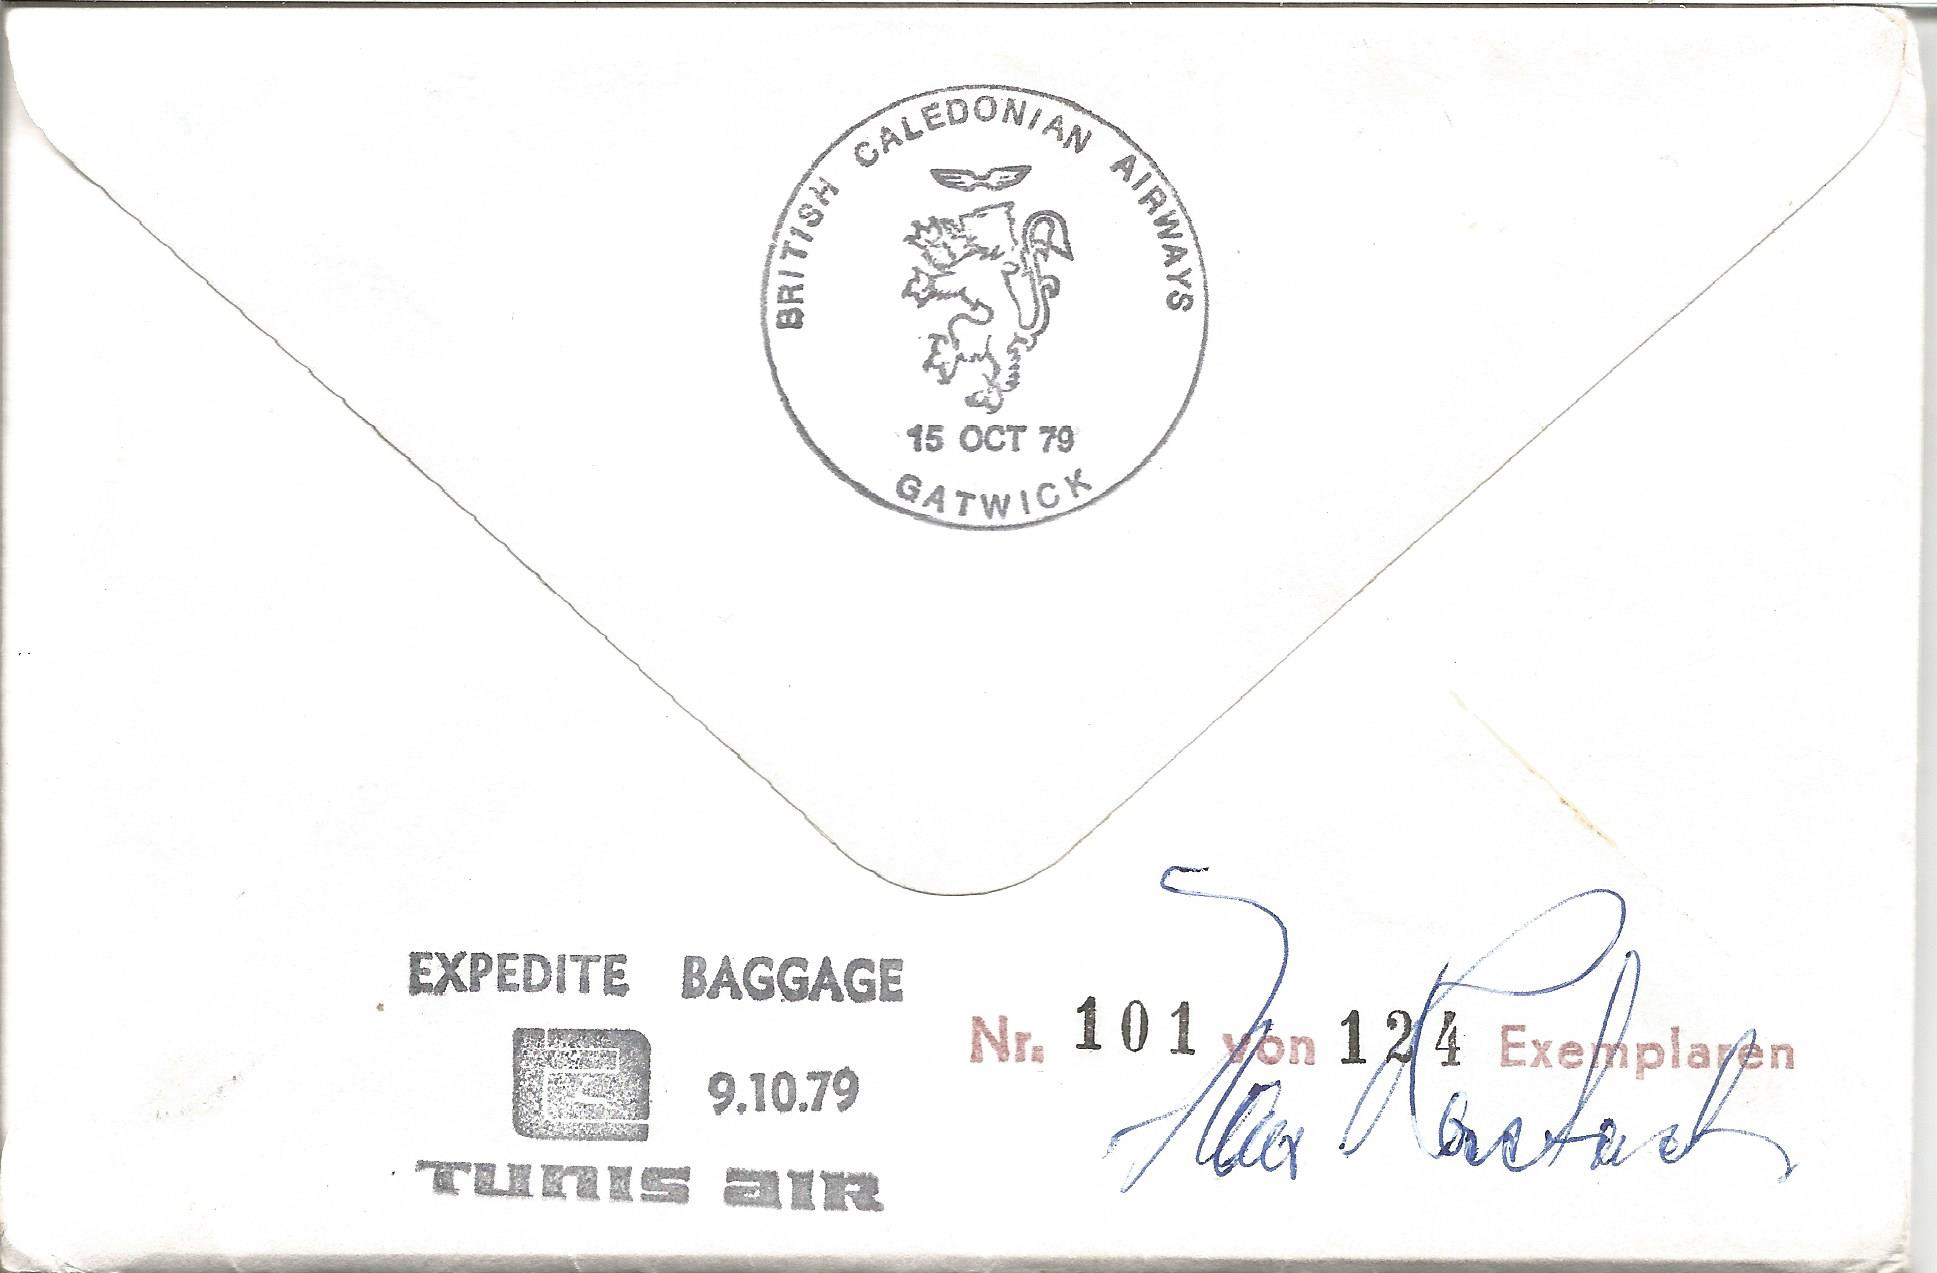 Glorious Dozen Luftwaffe aces multiple signed cover. North Africa multi signed FDC No 101 of 124. - Image 2 of 2